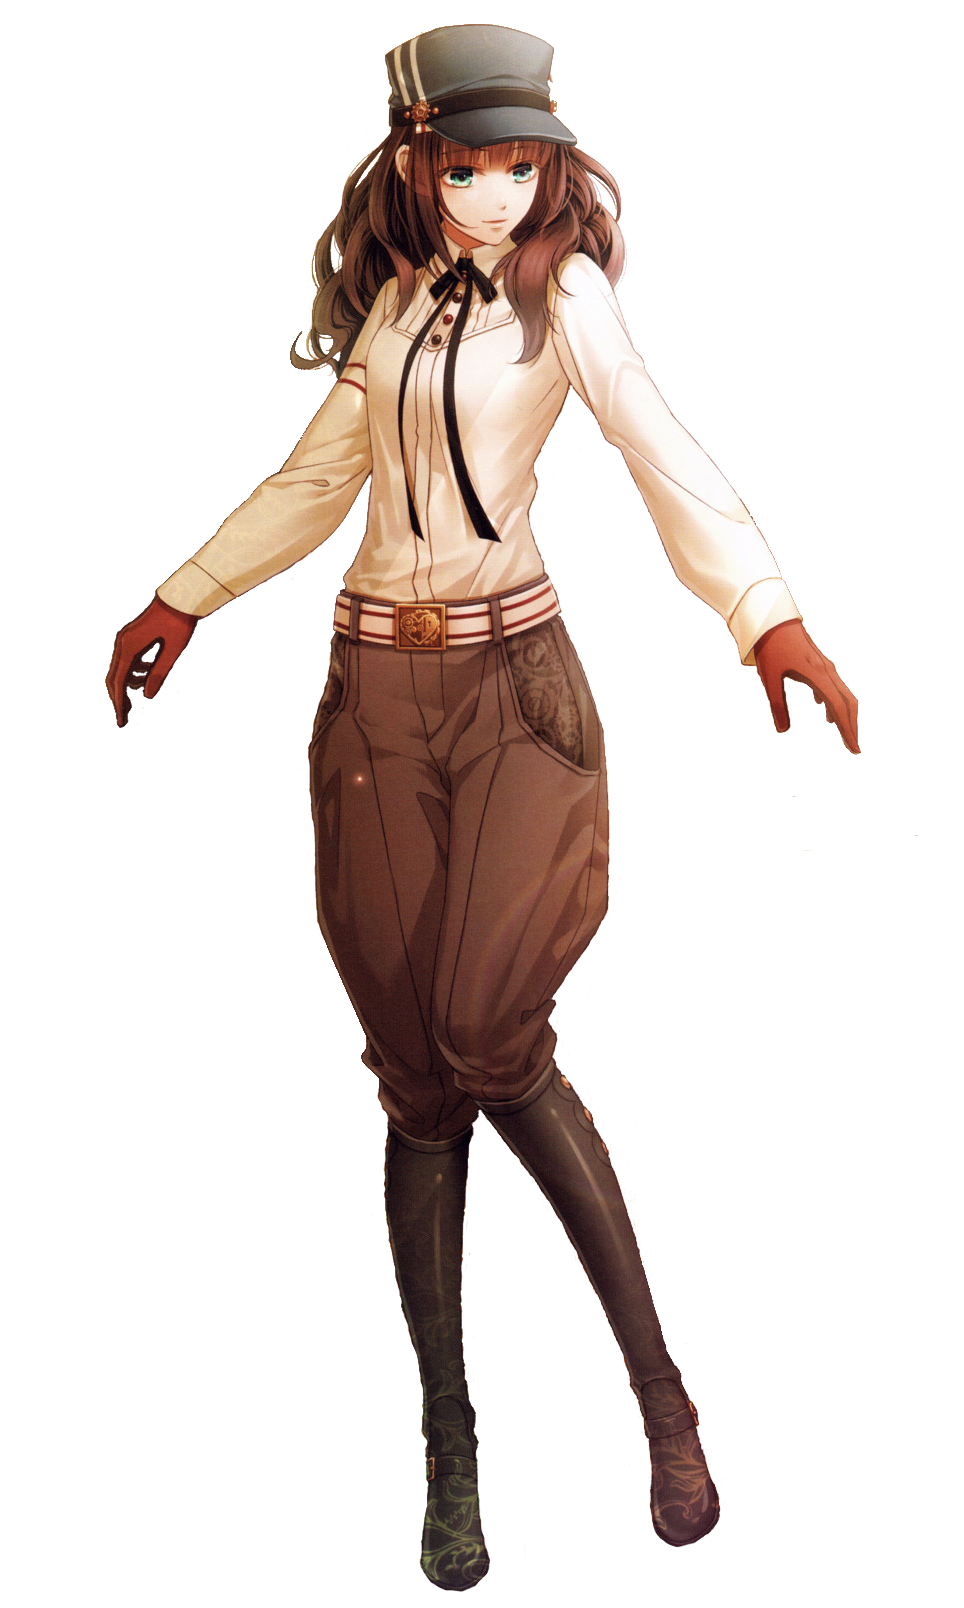 Cardia_Alternate_Outfit